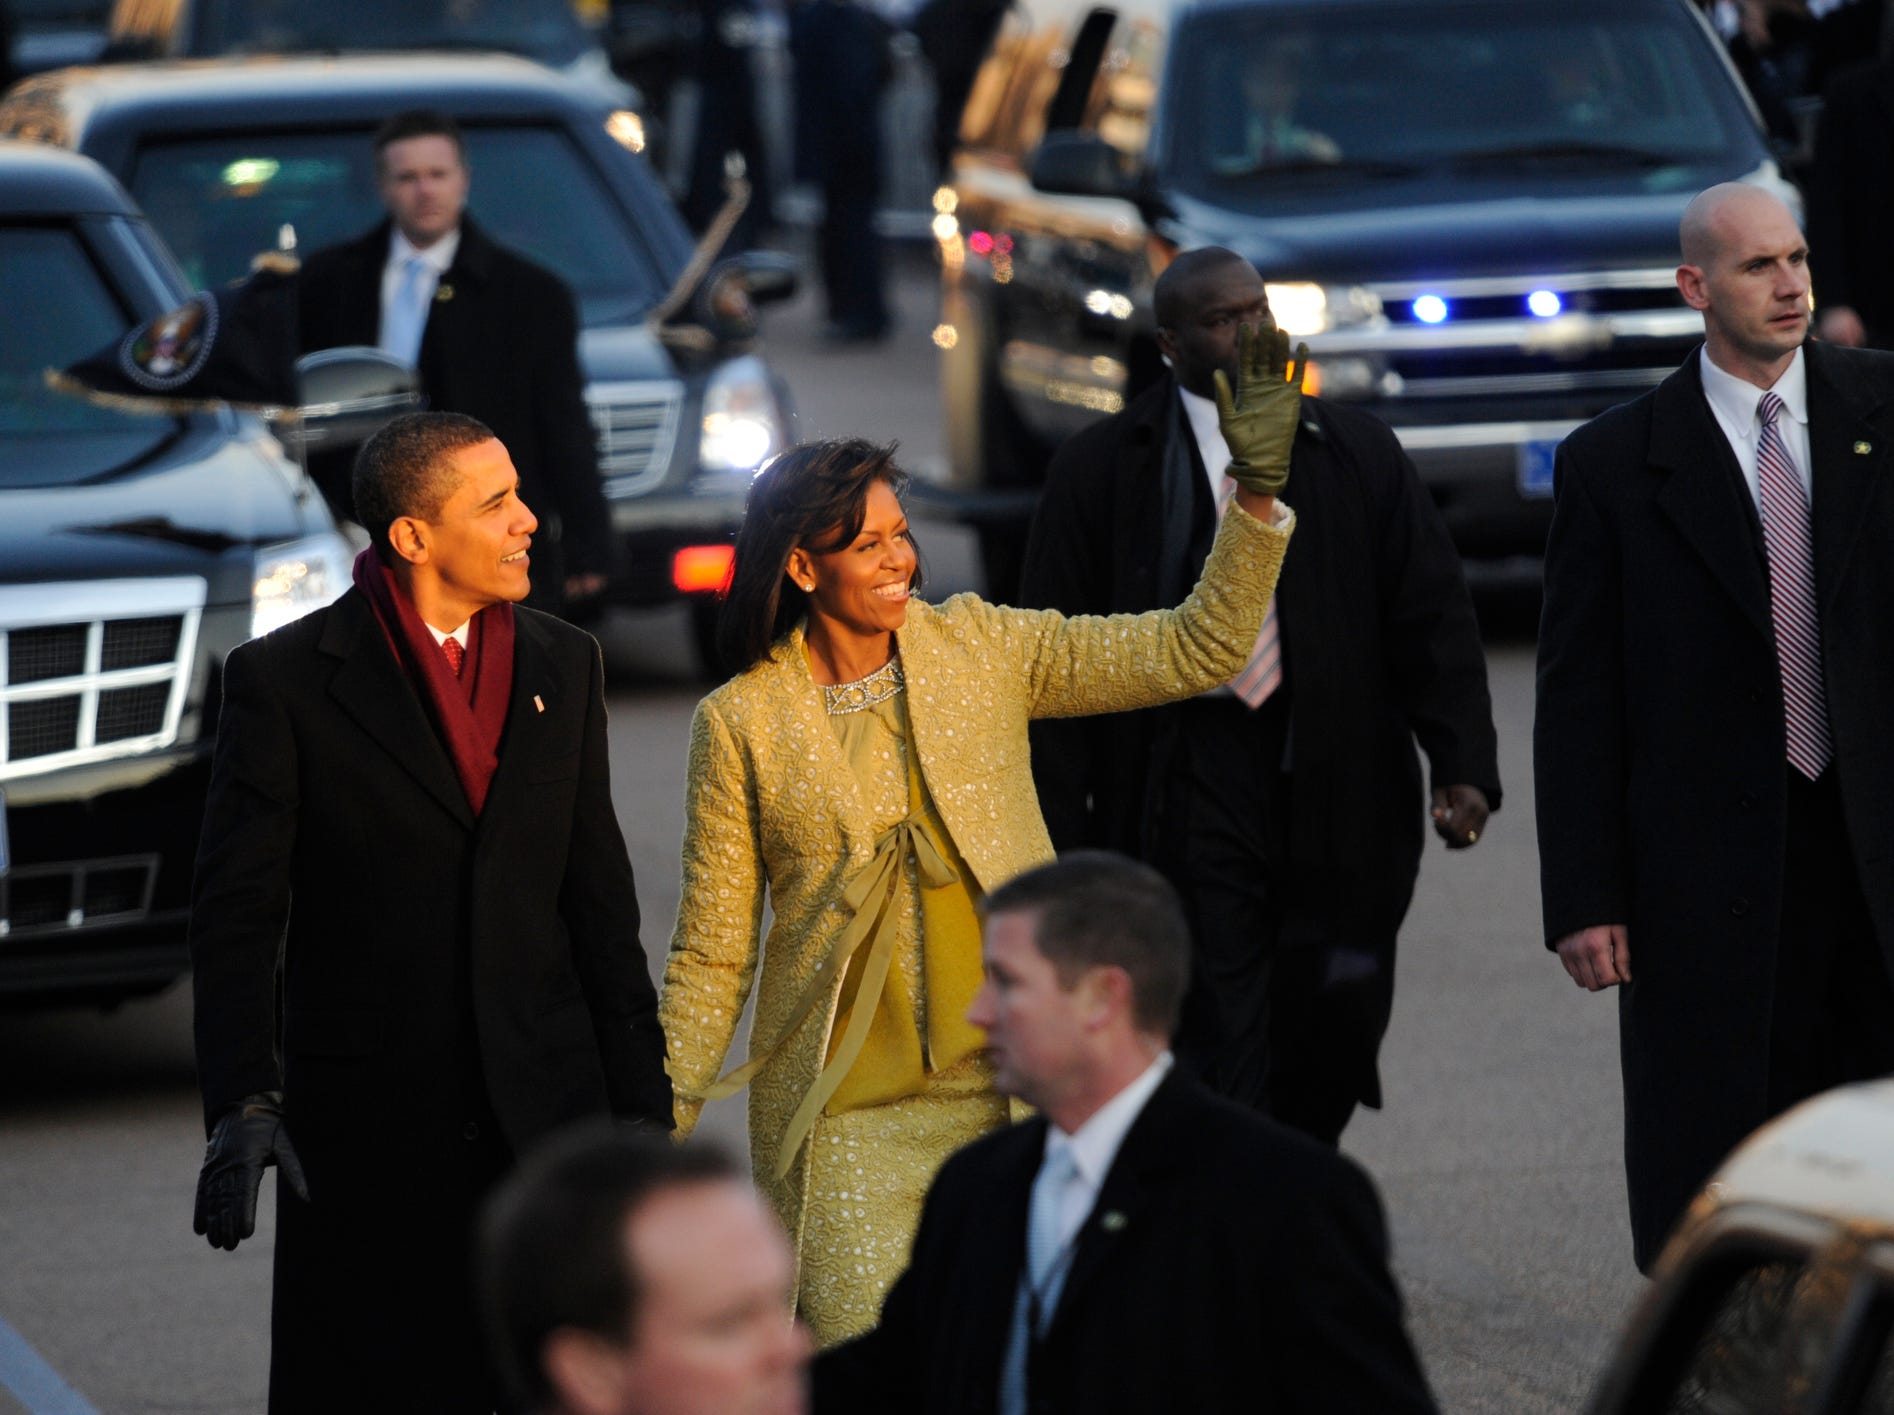 1/20/2009 Washington, DC, U.S.A  -- The President of the United States Barack Obama and Michelle Obama during the Inaugural Parade January 20, 2009. Some images are of people along the parade route.  Photo by Jud McCrehin, USA TODAY Staff  (Via OlyDrop)